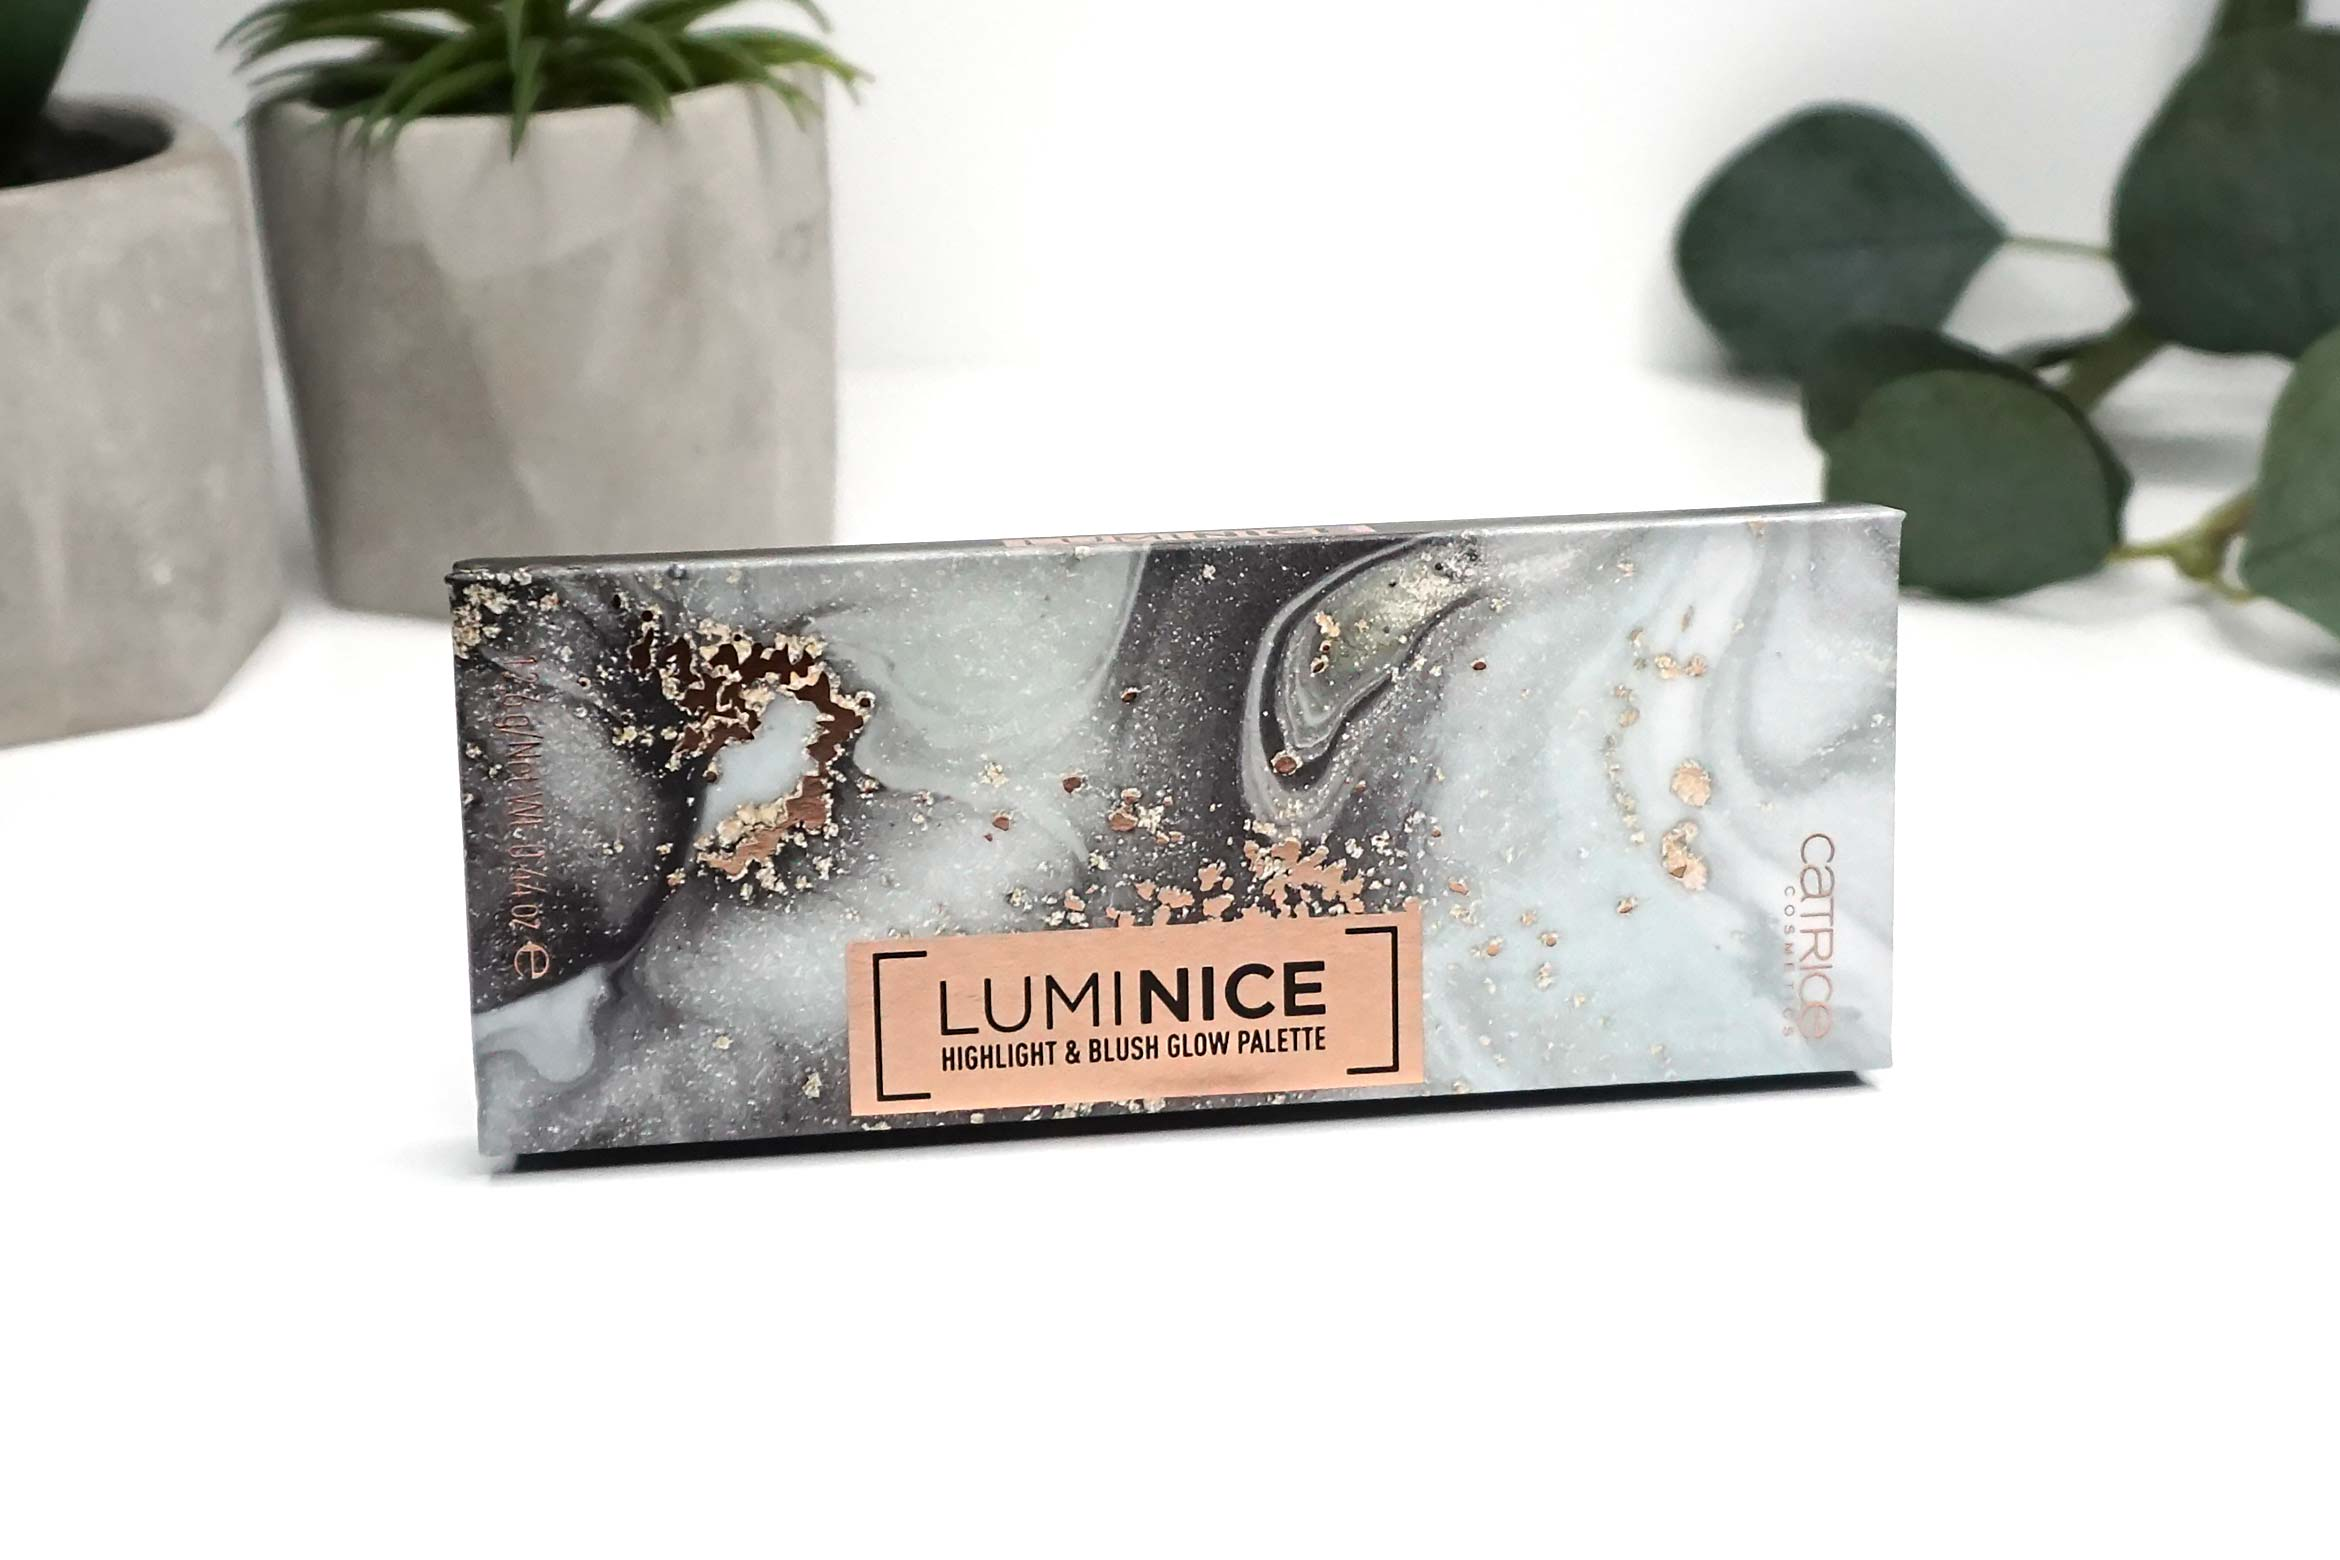 catrice-luminice-010-rose-vibes-only-highlight-blush-palette-review-3